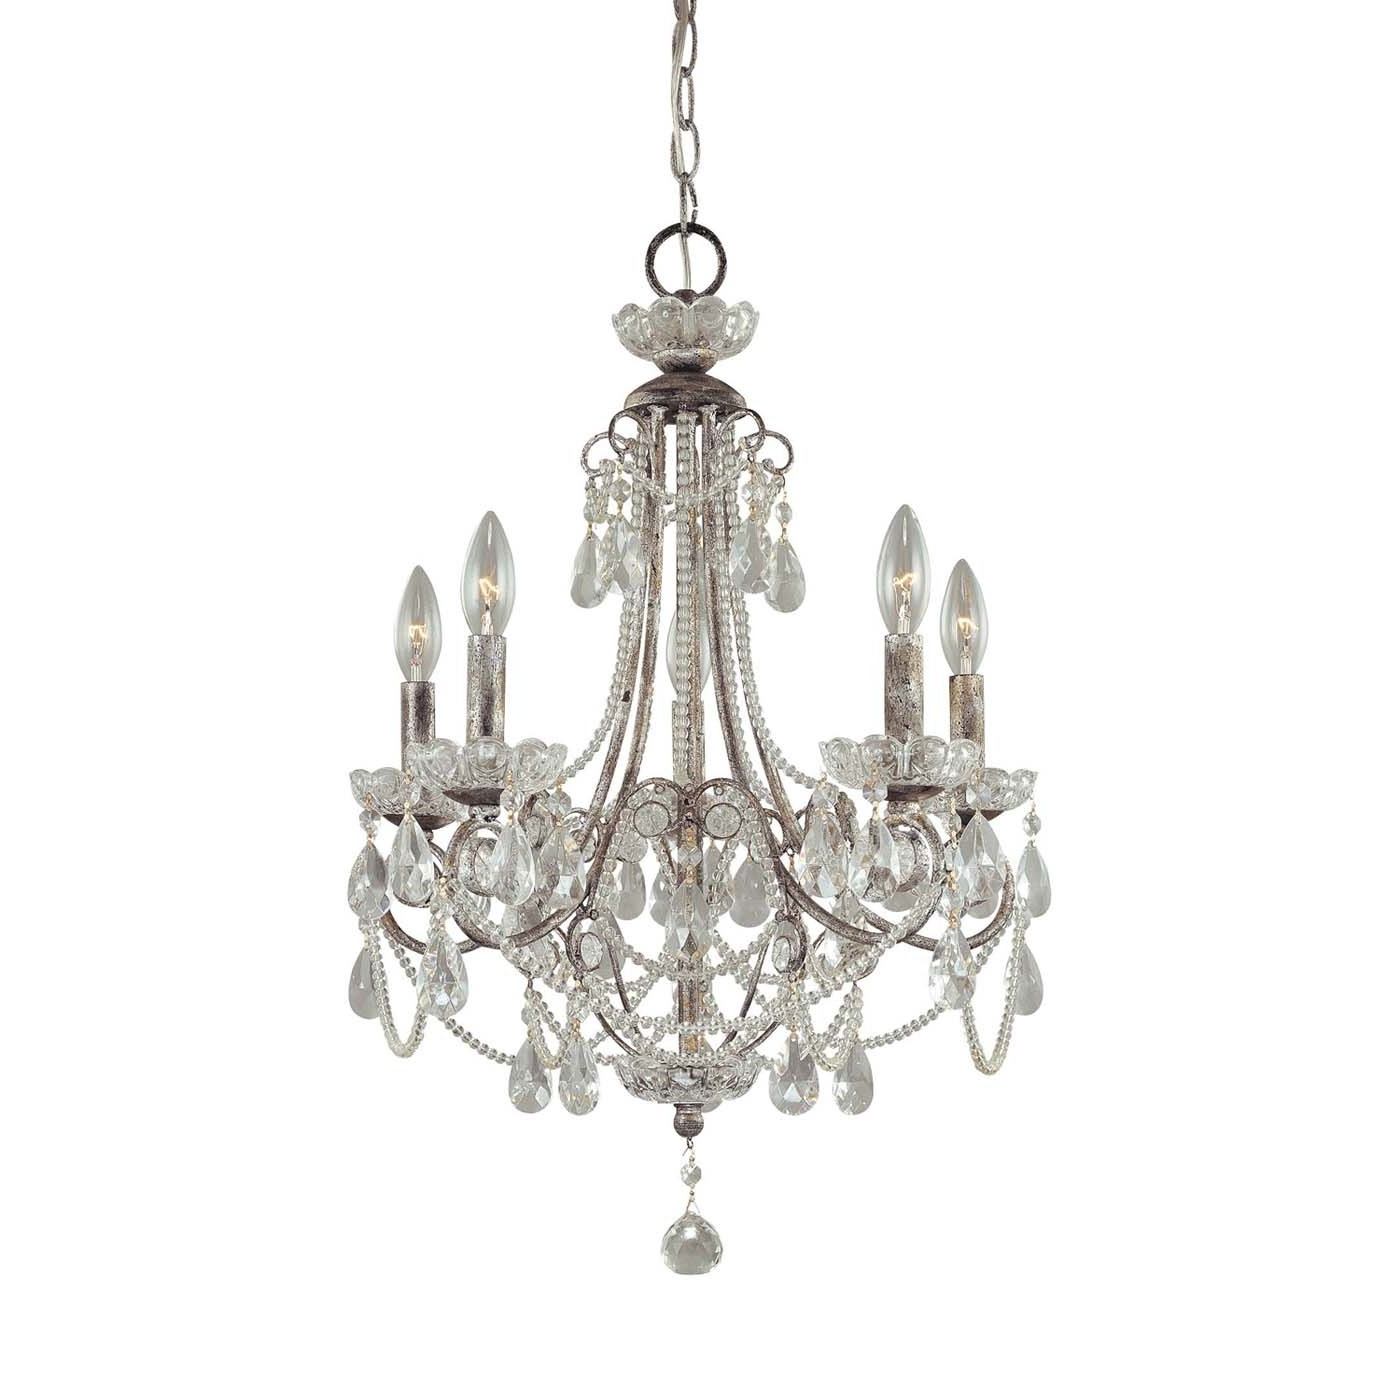 Chandelier: Extraordinary Small Chandeliers For Bedrooms Mini Inside Most Recent Small Glass Chandeliers (View 5 of 20)